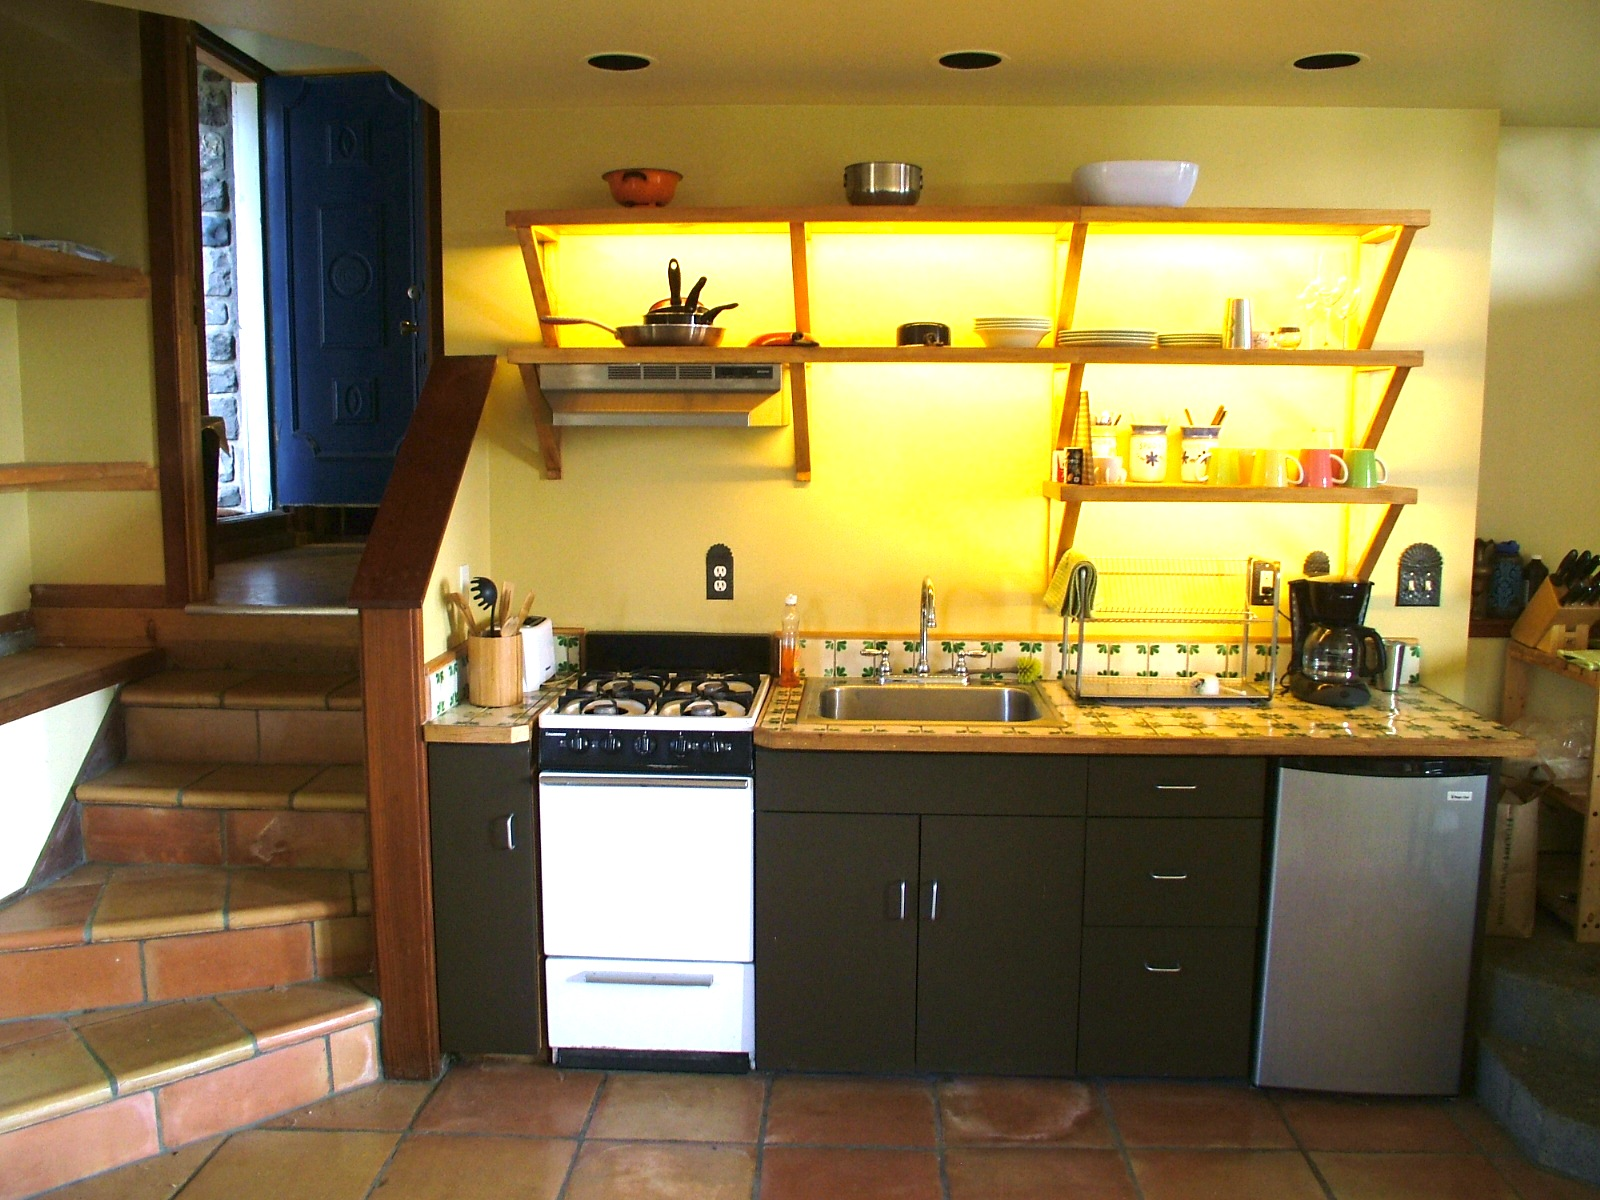 Kitchenette in Cottage with Mexican Tile motif.